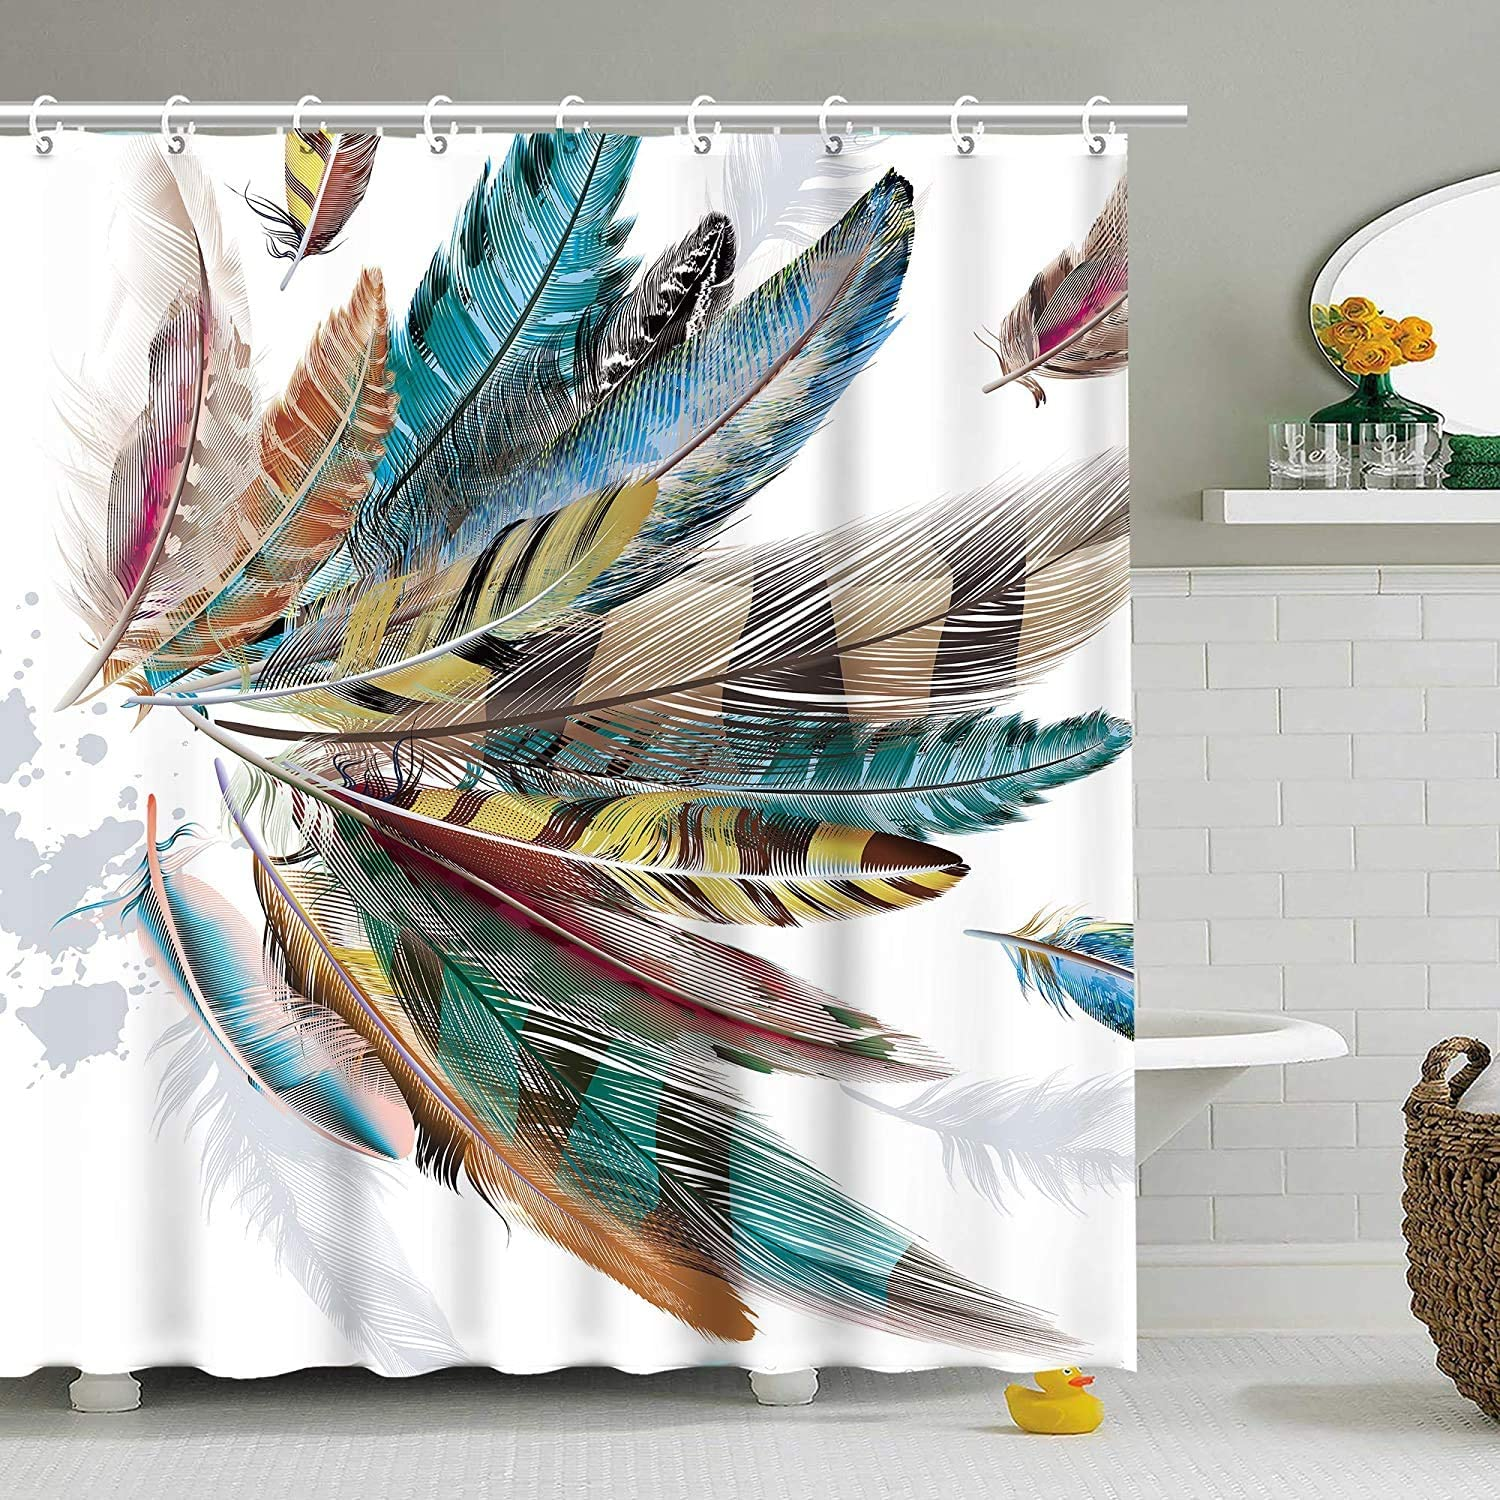 Stacy Fay Bird Feather Shower Curtain Teal Brown Shower Curtain Animal Feather Shower Curtain with Hooks Colorful Feather Shower Curtain Bathroom Bird Feather 72x84 Inches Teal Brown